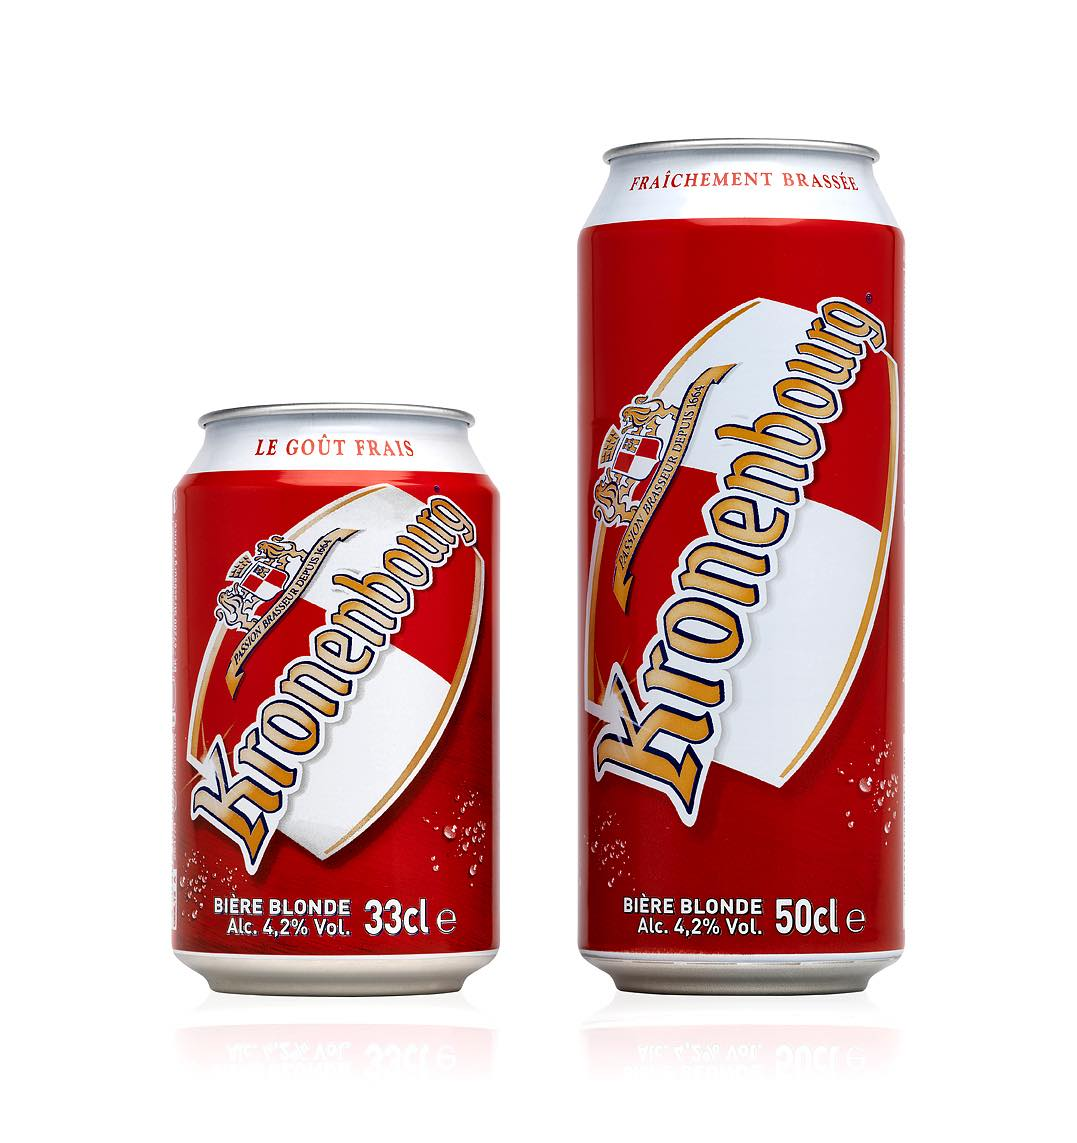 Fresh look for Kronenbourg brand thanks to Crown Bevcan